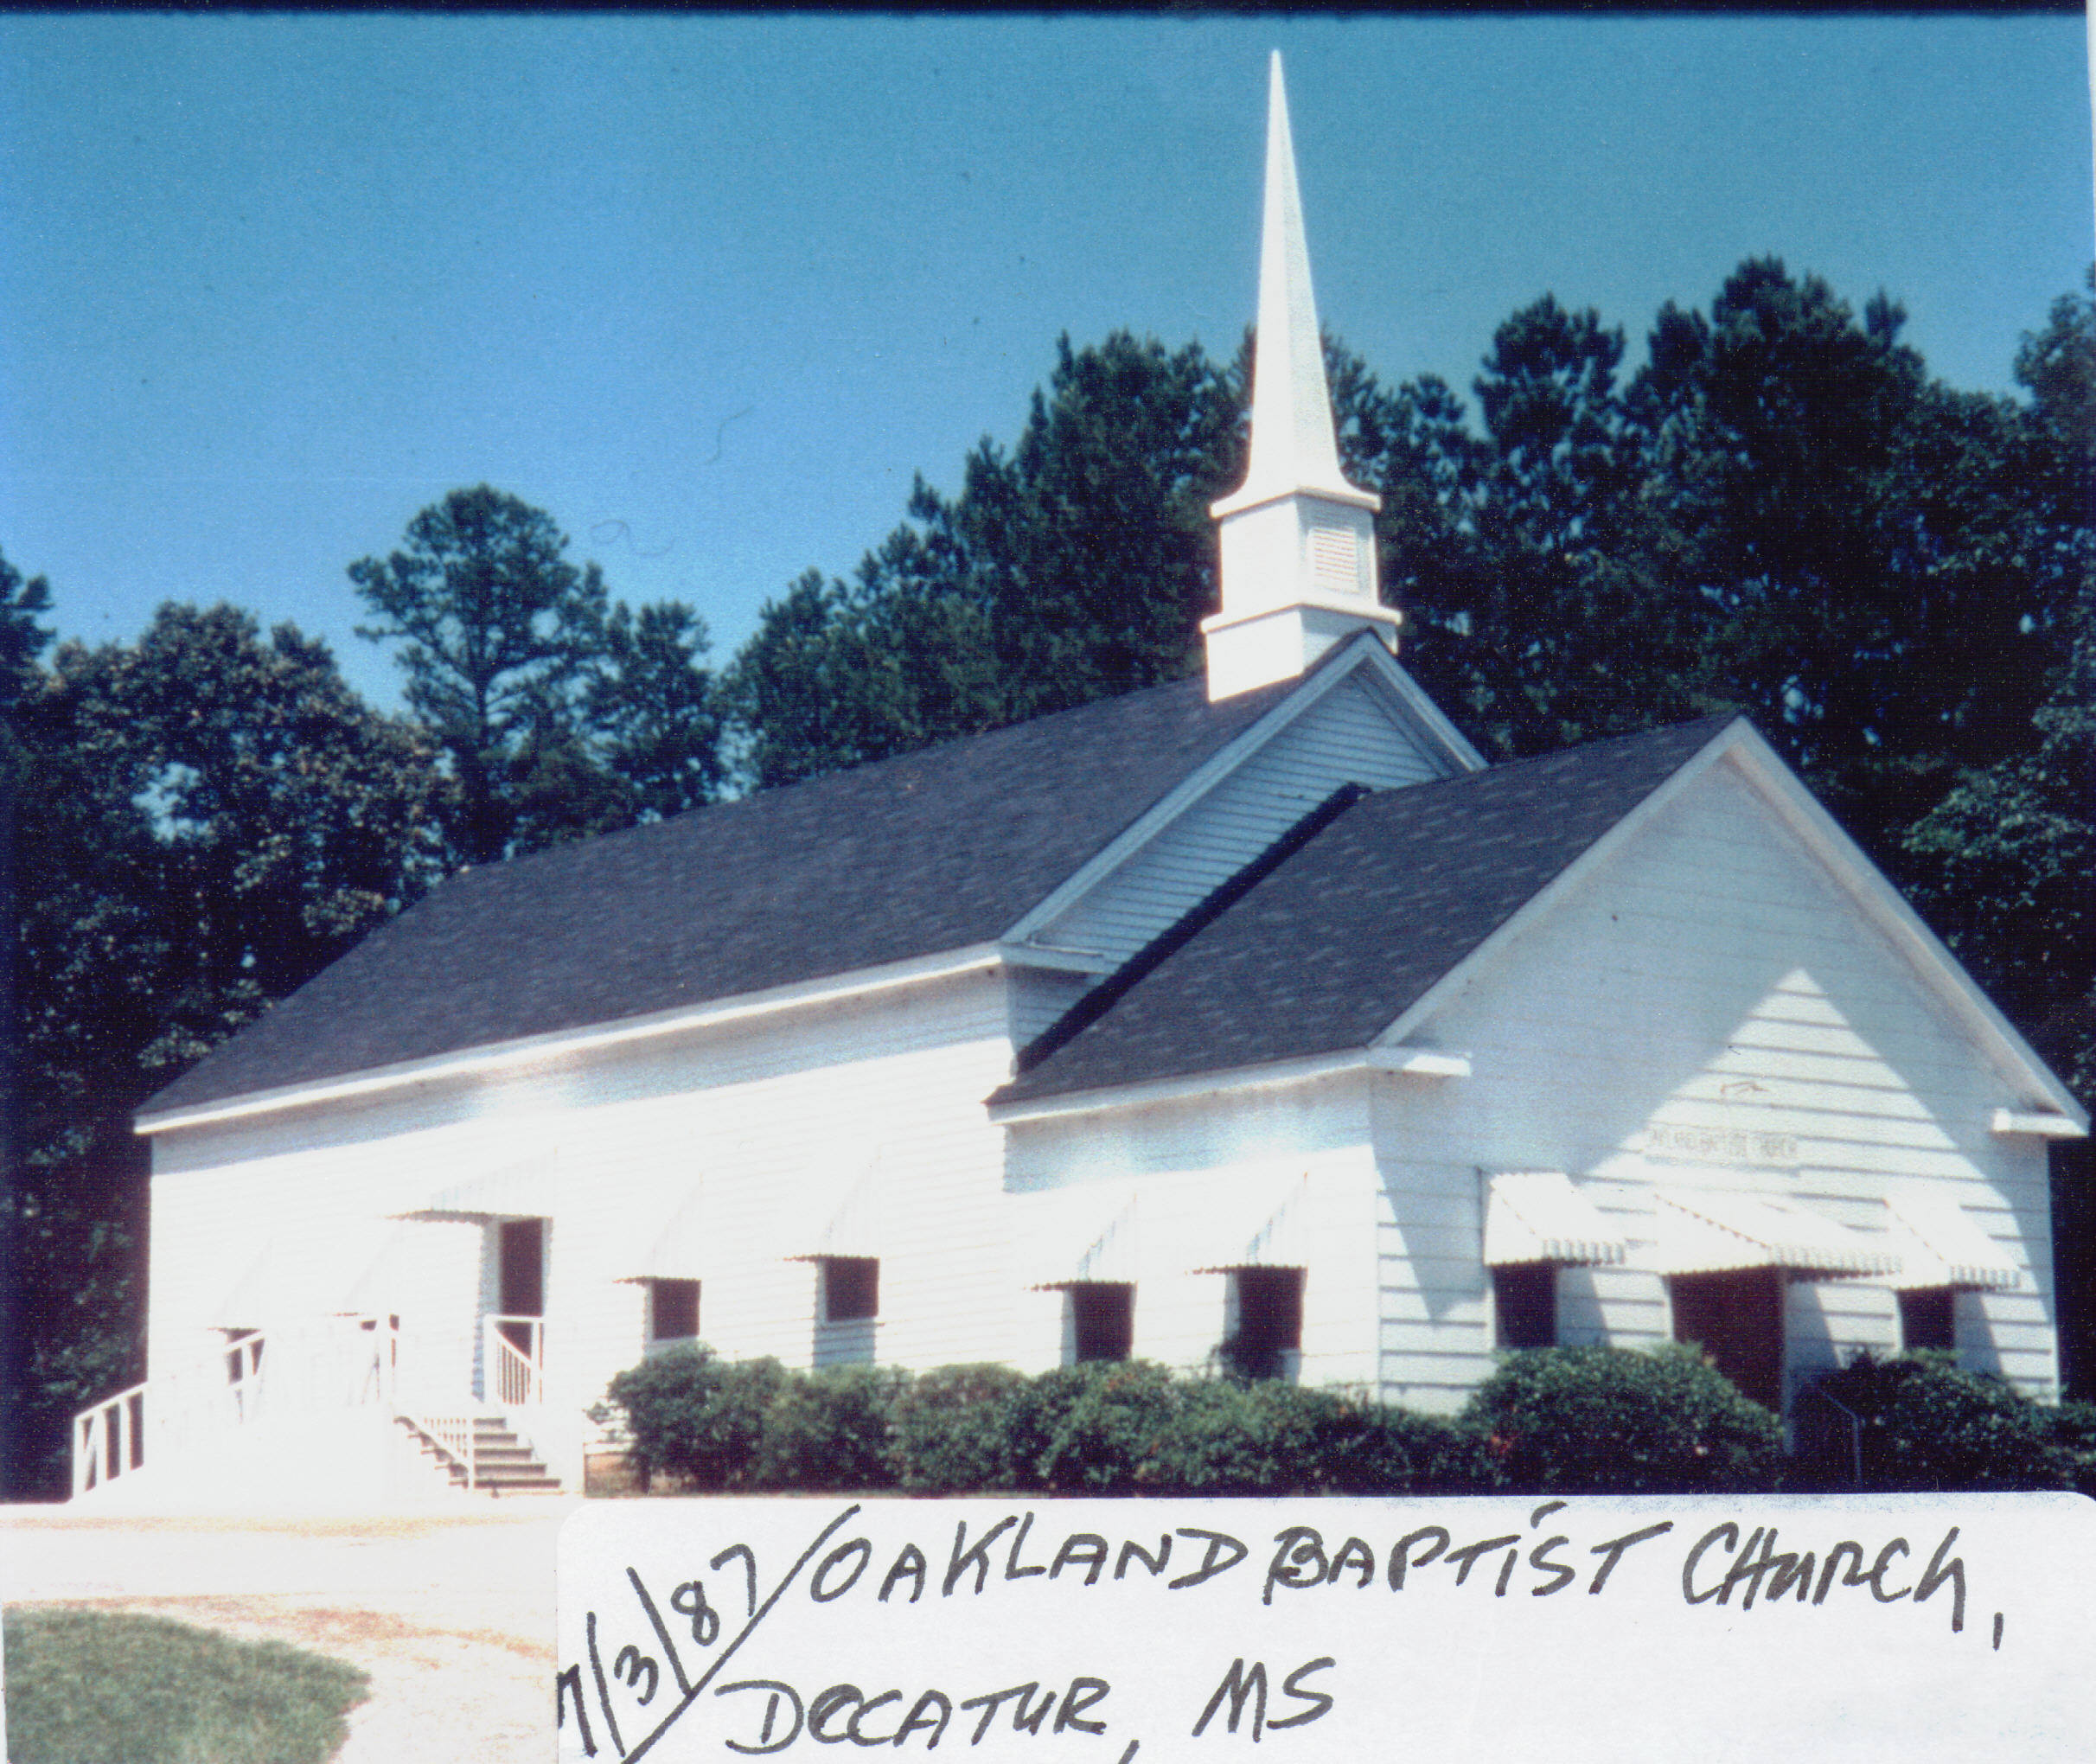 Mississippi newton county newton - Oakland Baptist Church Decatur Ms 7 3 1987 Thumbnail